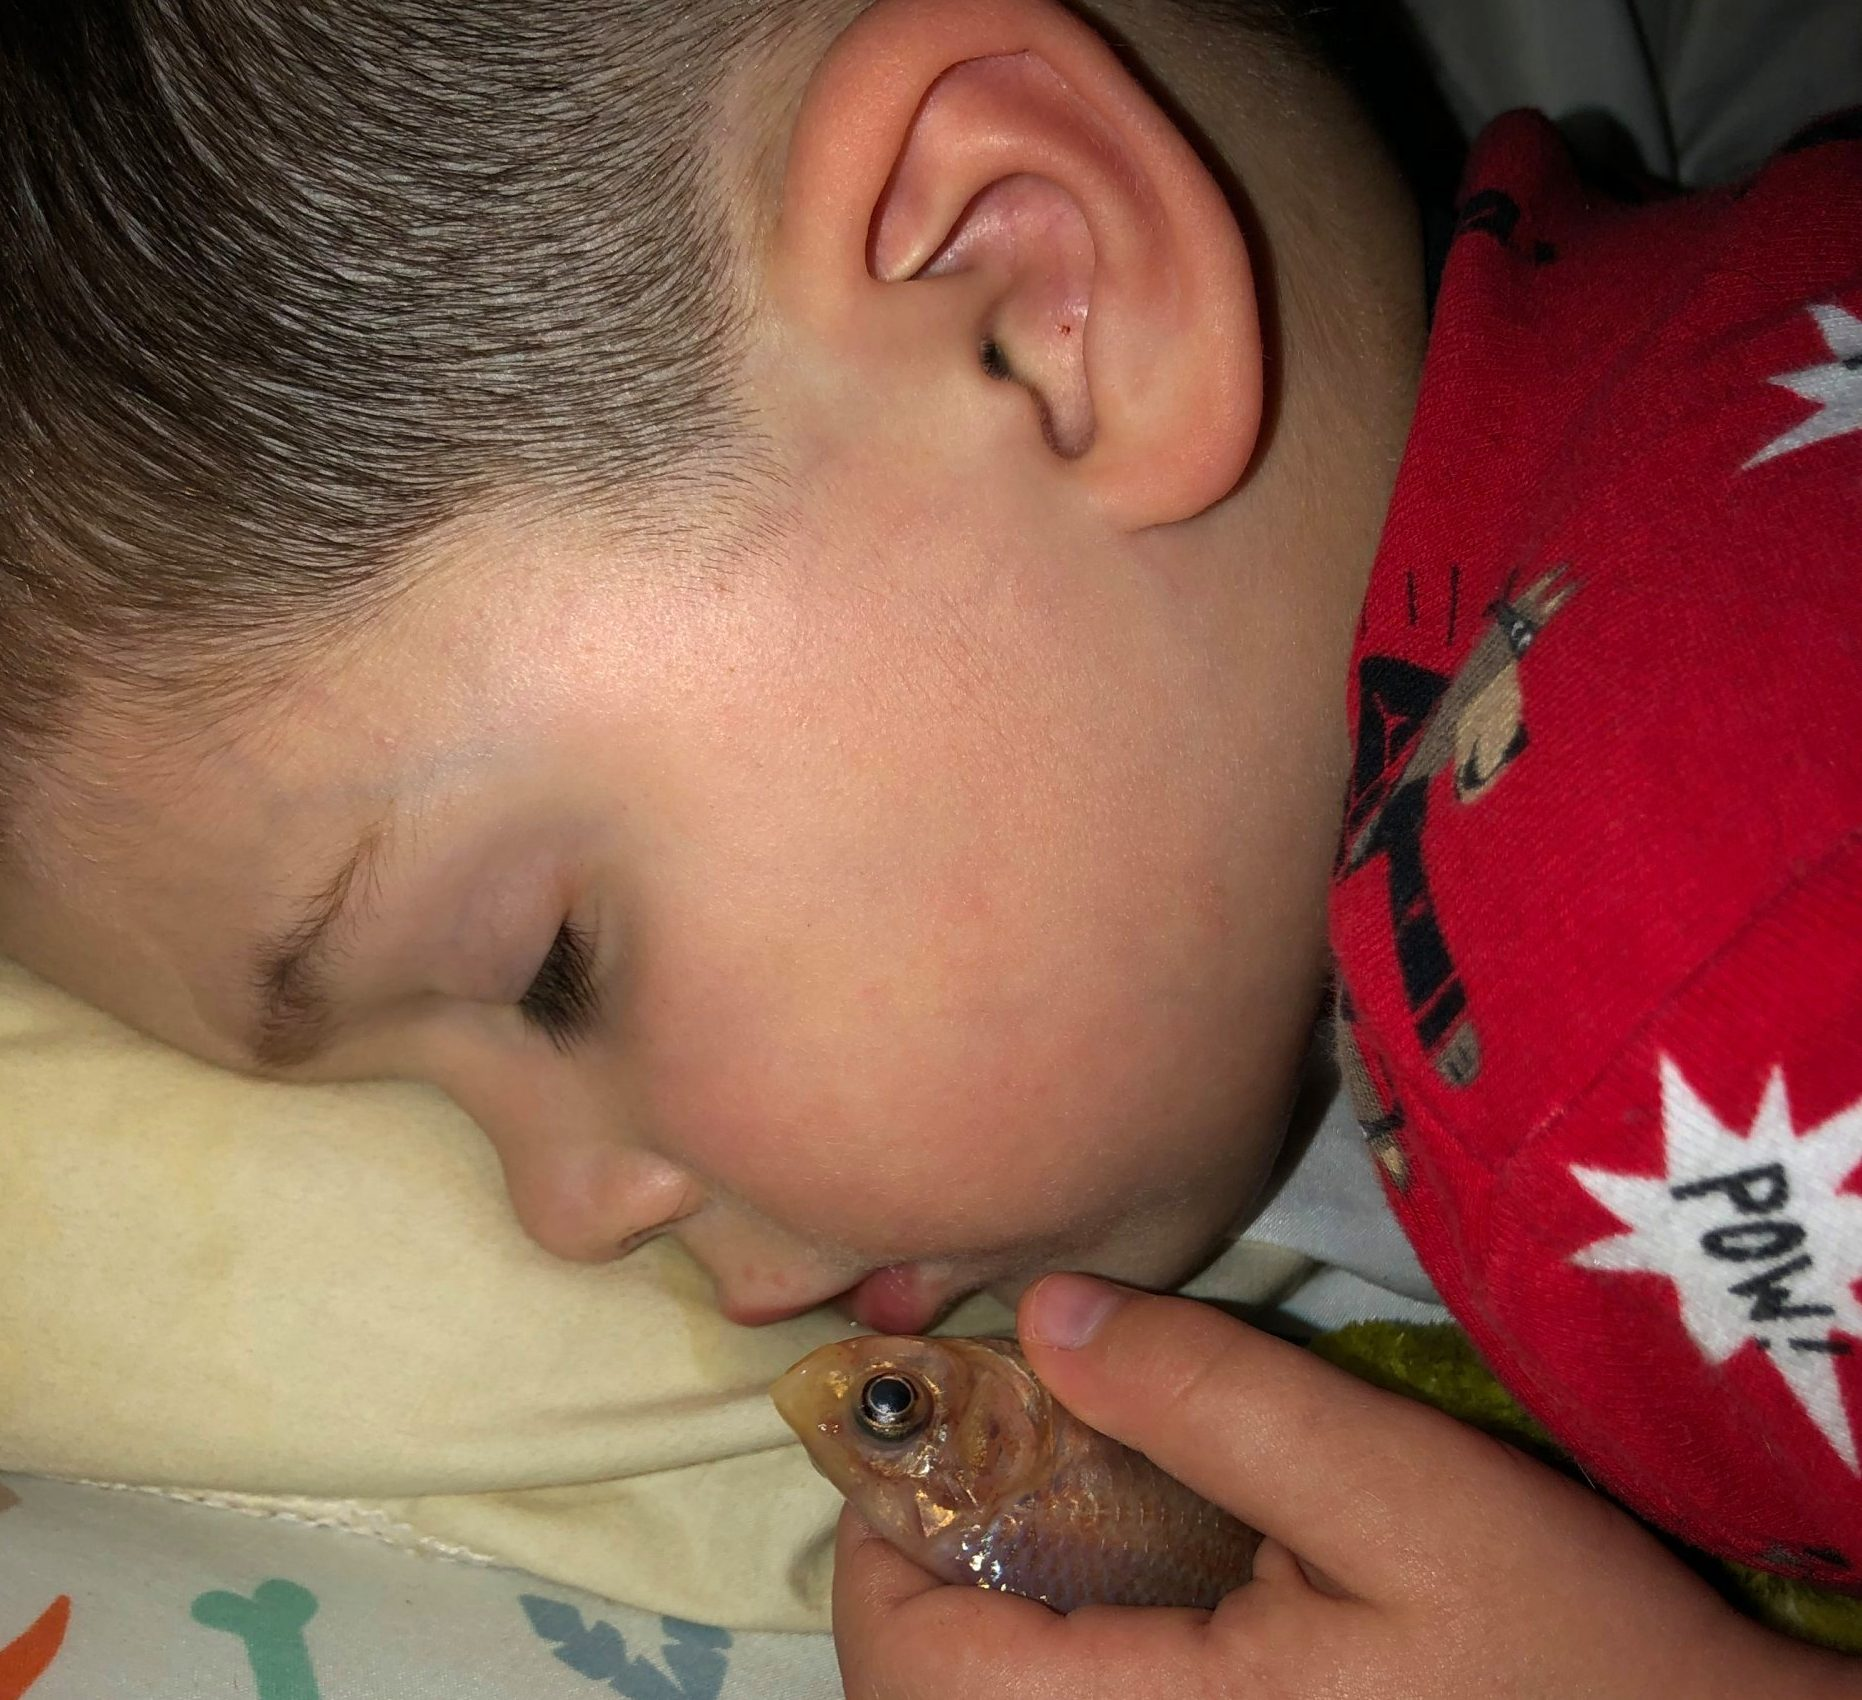 PIC FROM Kennedy News and Media (PICTURED: EVERETT HAMLIN ASLEEP WITH HIS GOLDFISH AFTER HE WANTED TO PET IT) This is the moment a shocked mum discovered her little boy peacefully asleep in bed snuggling with his beloved DEAD GOLDFISH - because he wanted to cuddle his pet while he slept. Mum Tori Hamlin got up from watching a film to check on sleeping Everett - but was confused when she noticed a chair pulled up to the tank and the lid removed. She and husband Corey Hamlin, 29, realised the fish was no longer in the tank and searched high and low before they spotted the tot peacefully asleep with the creature held tightly in his hand. SEE KENNEDY NEWS COPY - 0161 697 4266